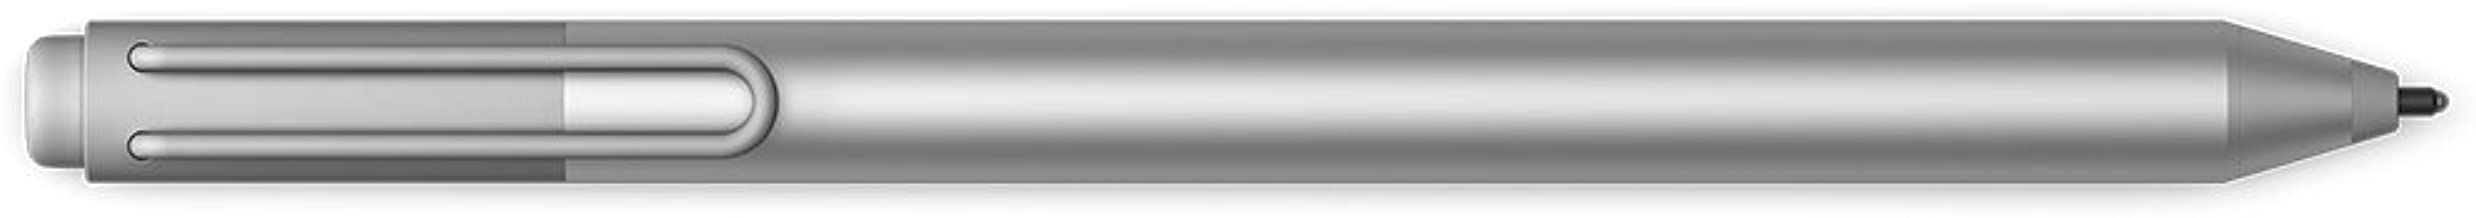 Microsoft Surface Pen, Silver (3XY-00001) for Surface 3; Surface Pro 3 & 4; Surface Book